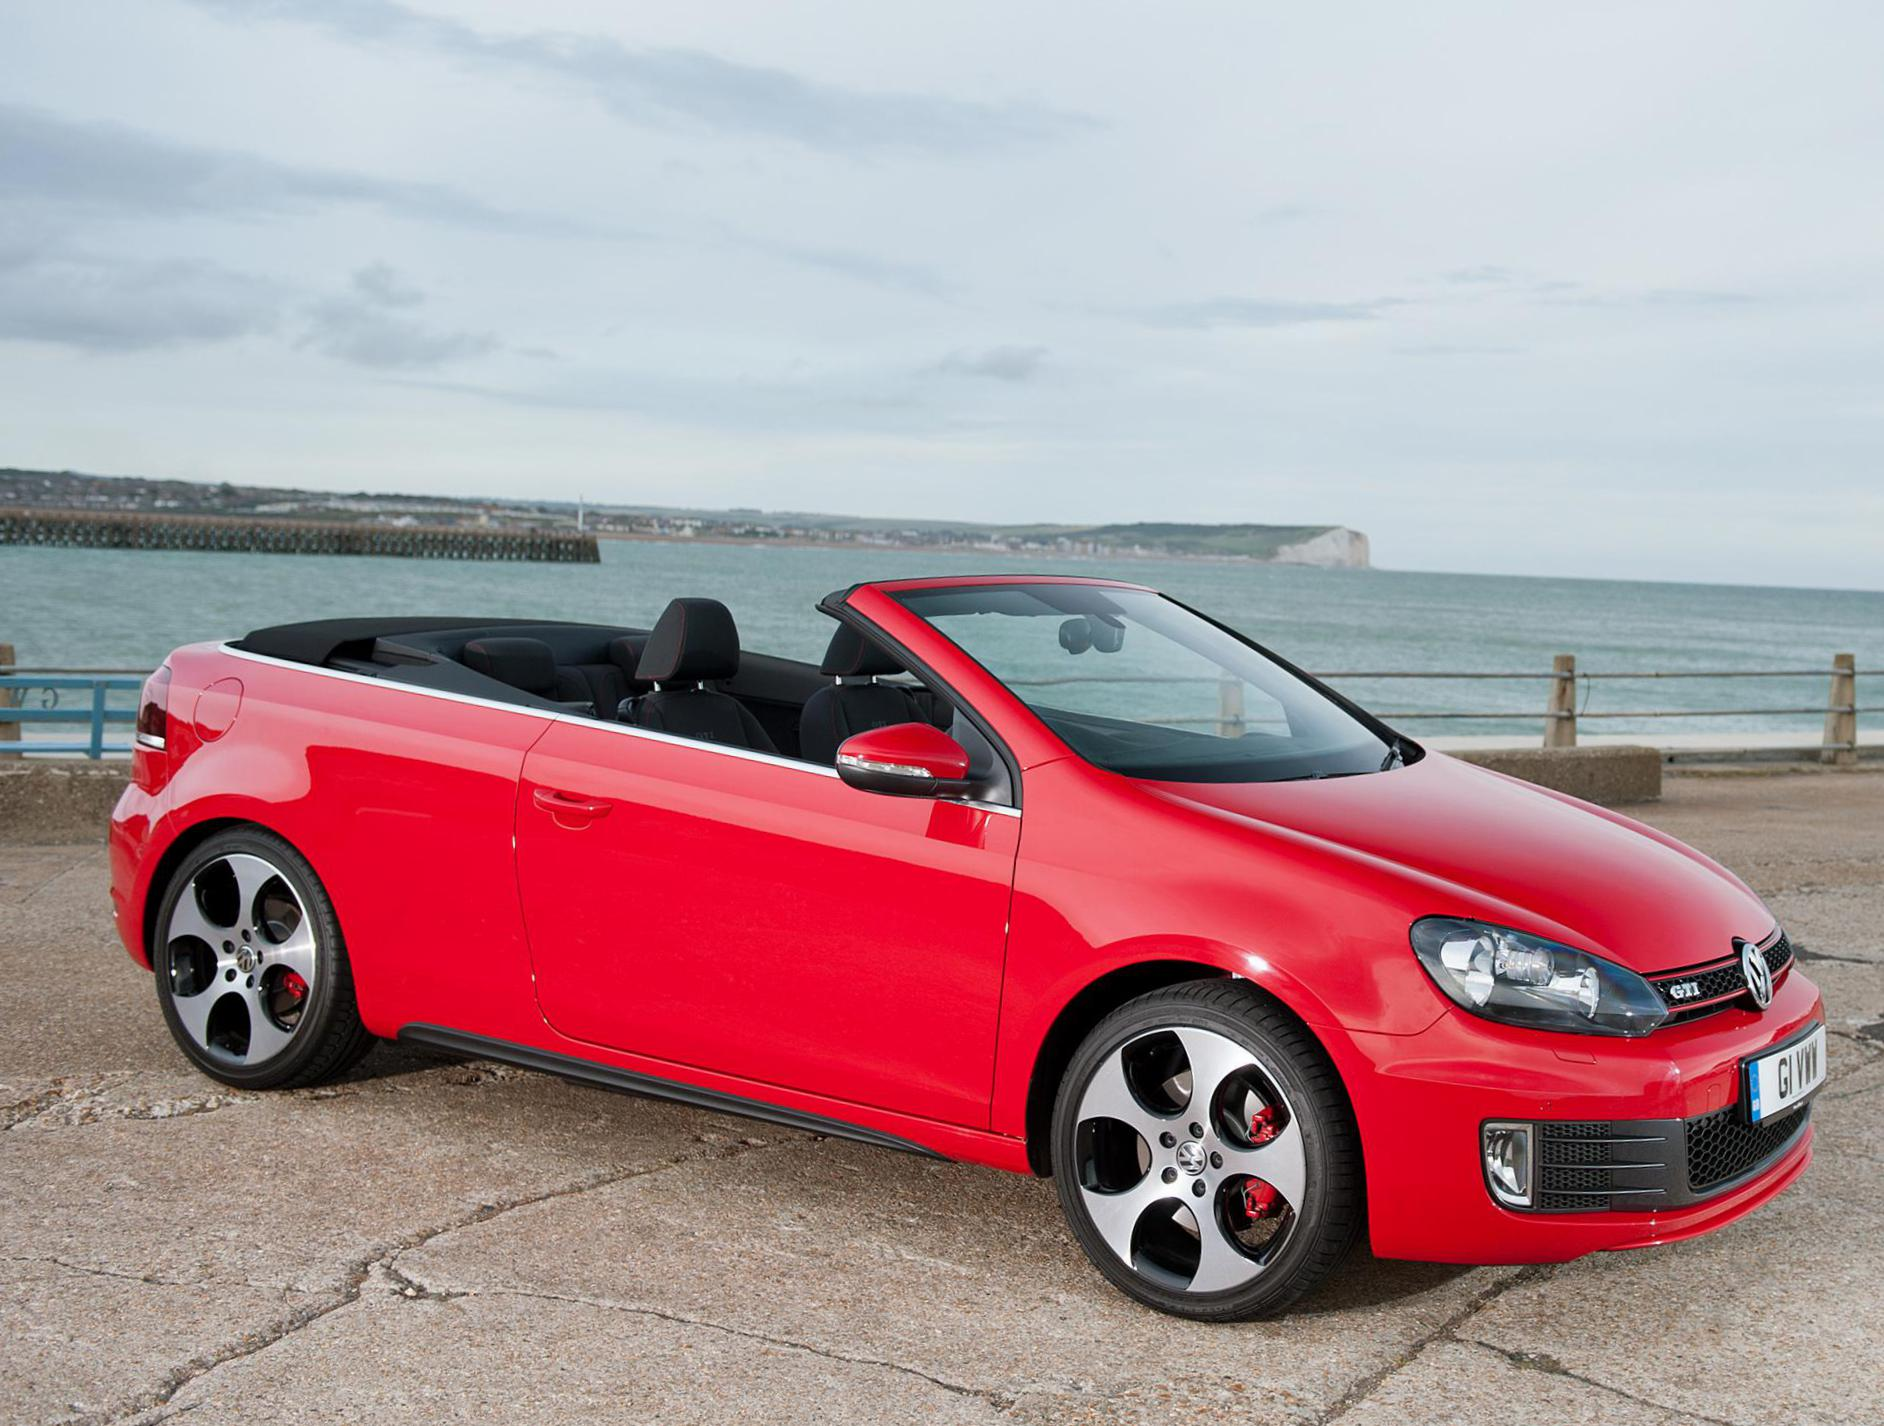 Golf GTI Cabriolet Volkswagen review 2014